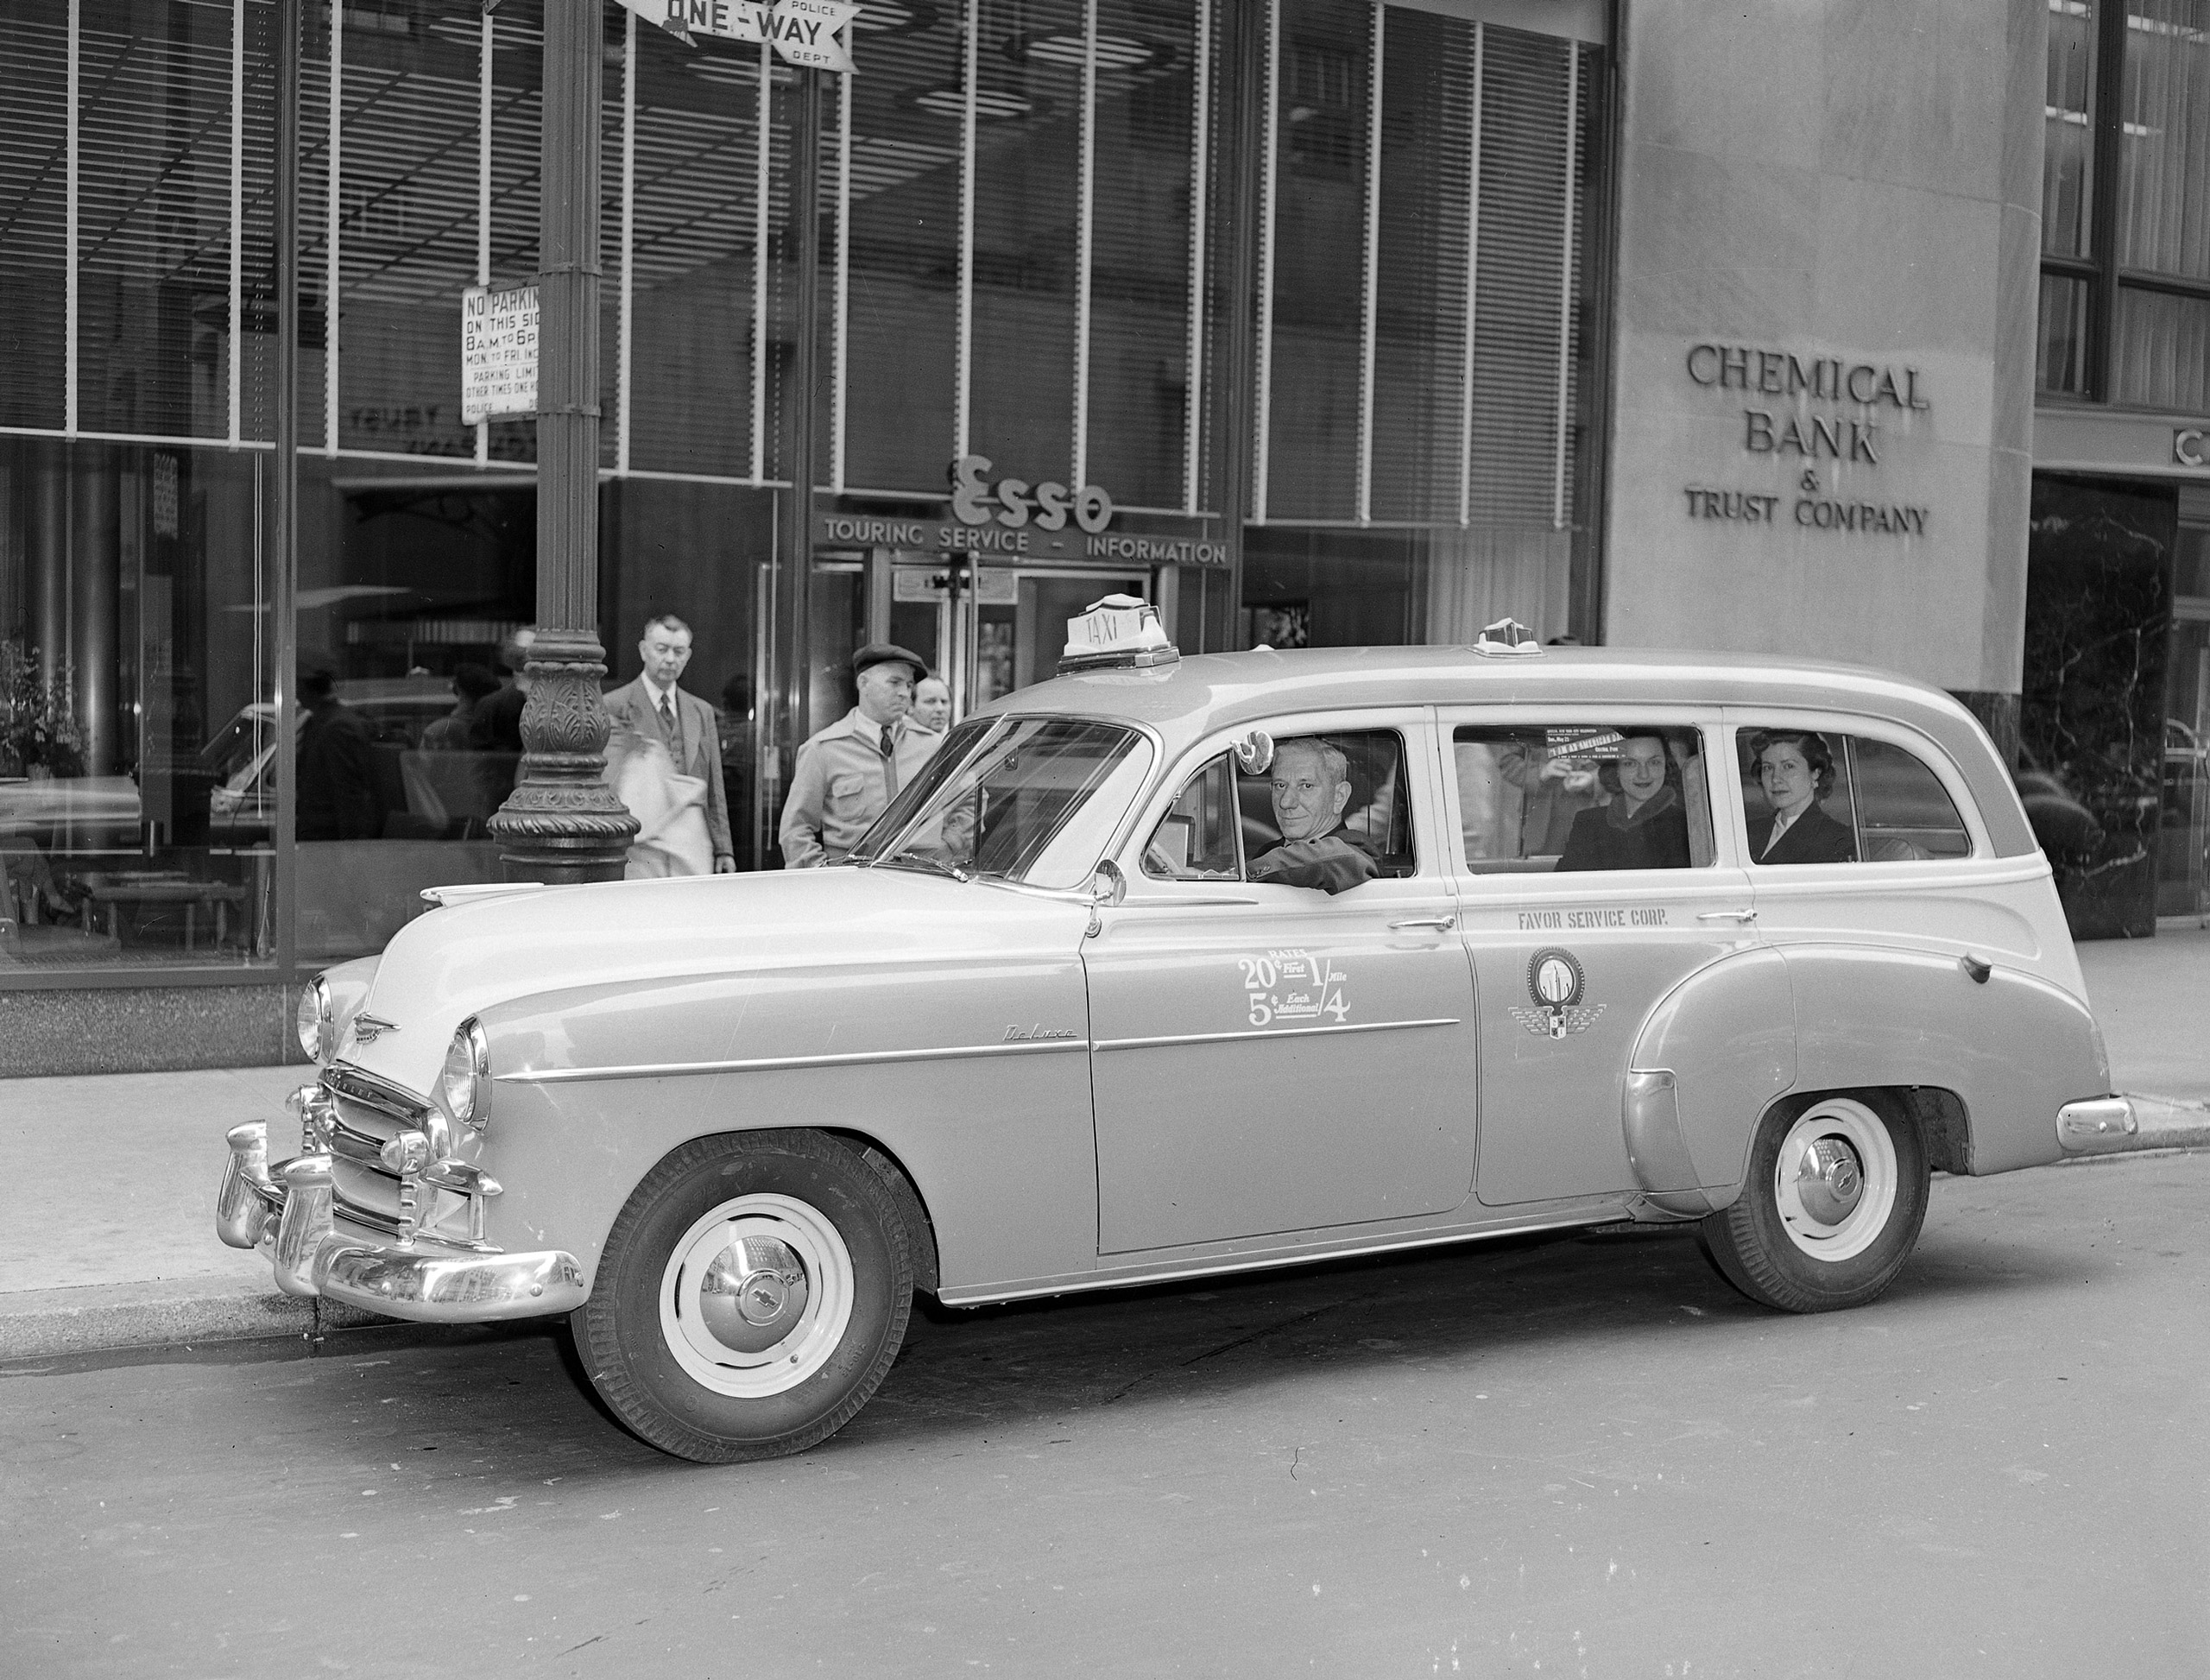 The new model taxicab from Chevrolet is shown in New York City, May 17, 1950.